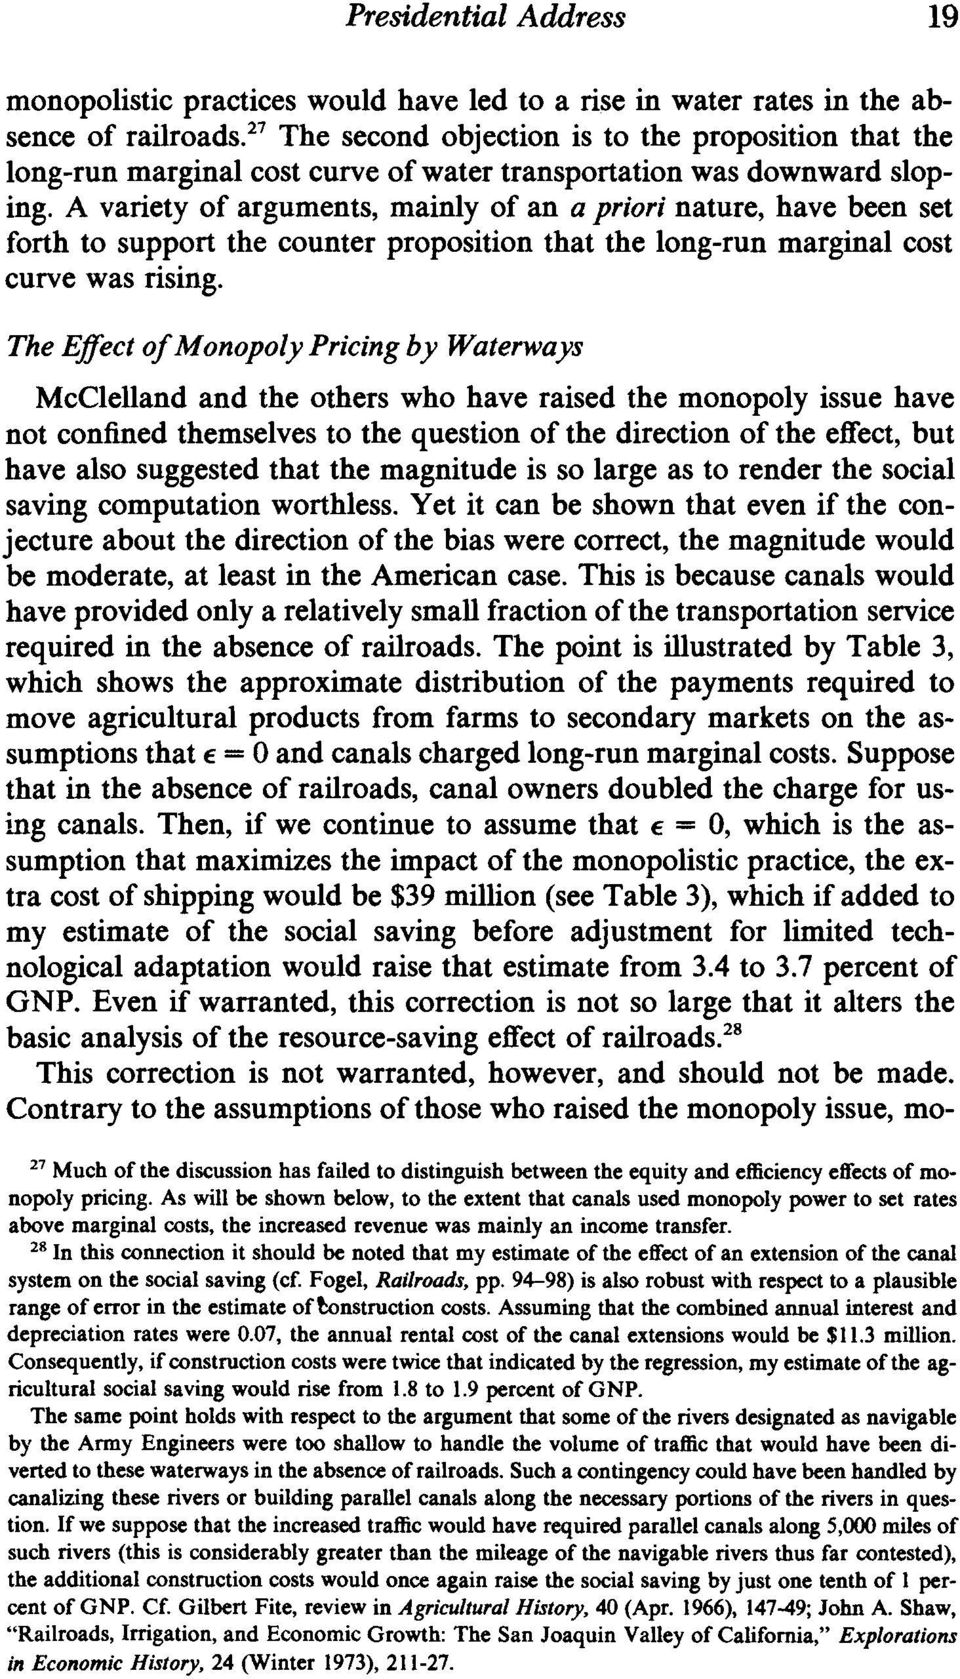 A variety of arguments, mainly of an a priori nature, have been set forth to support the counter proposition that the long-run marginal cost curve was rising.